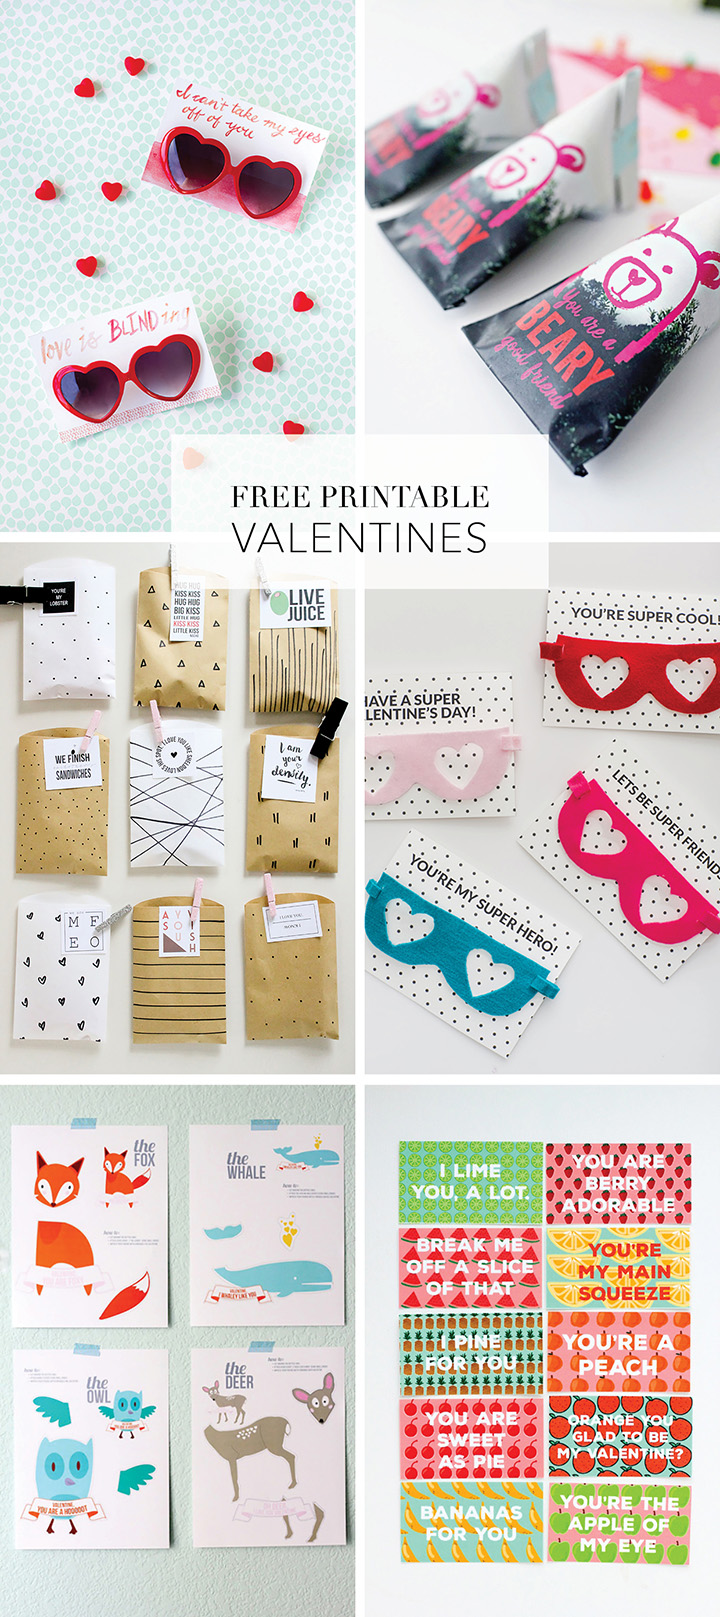 See our favorite Valentine Free Printables